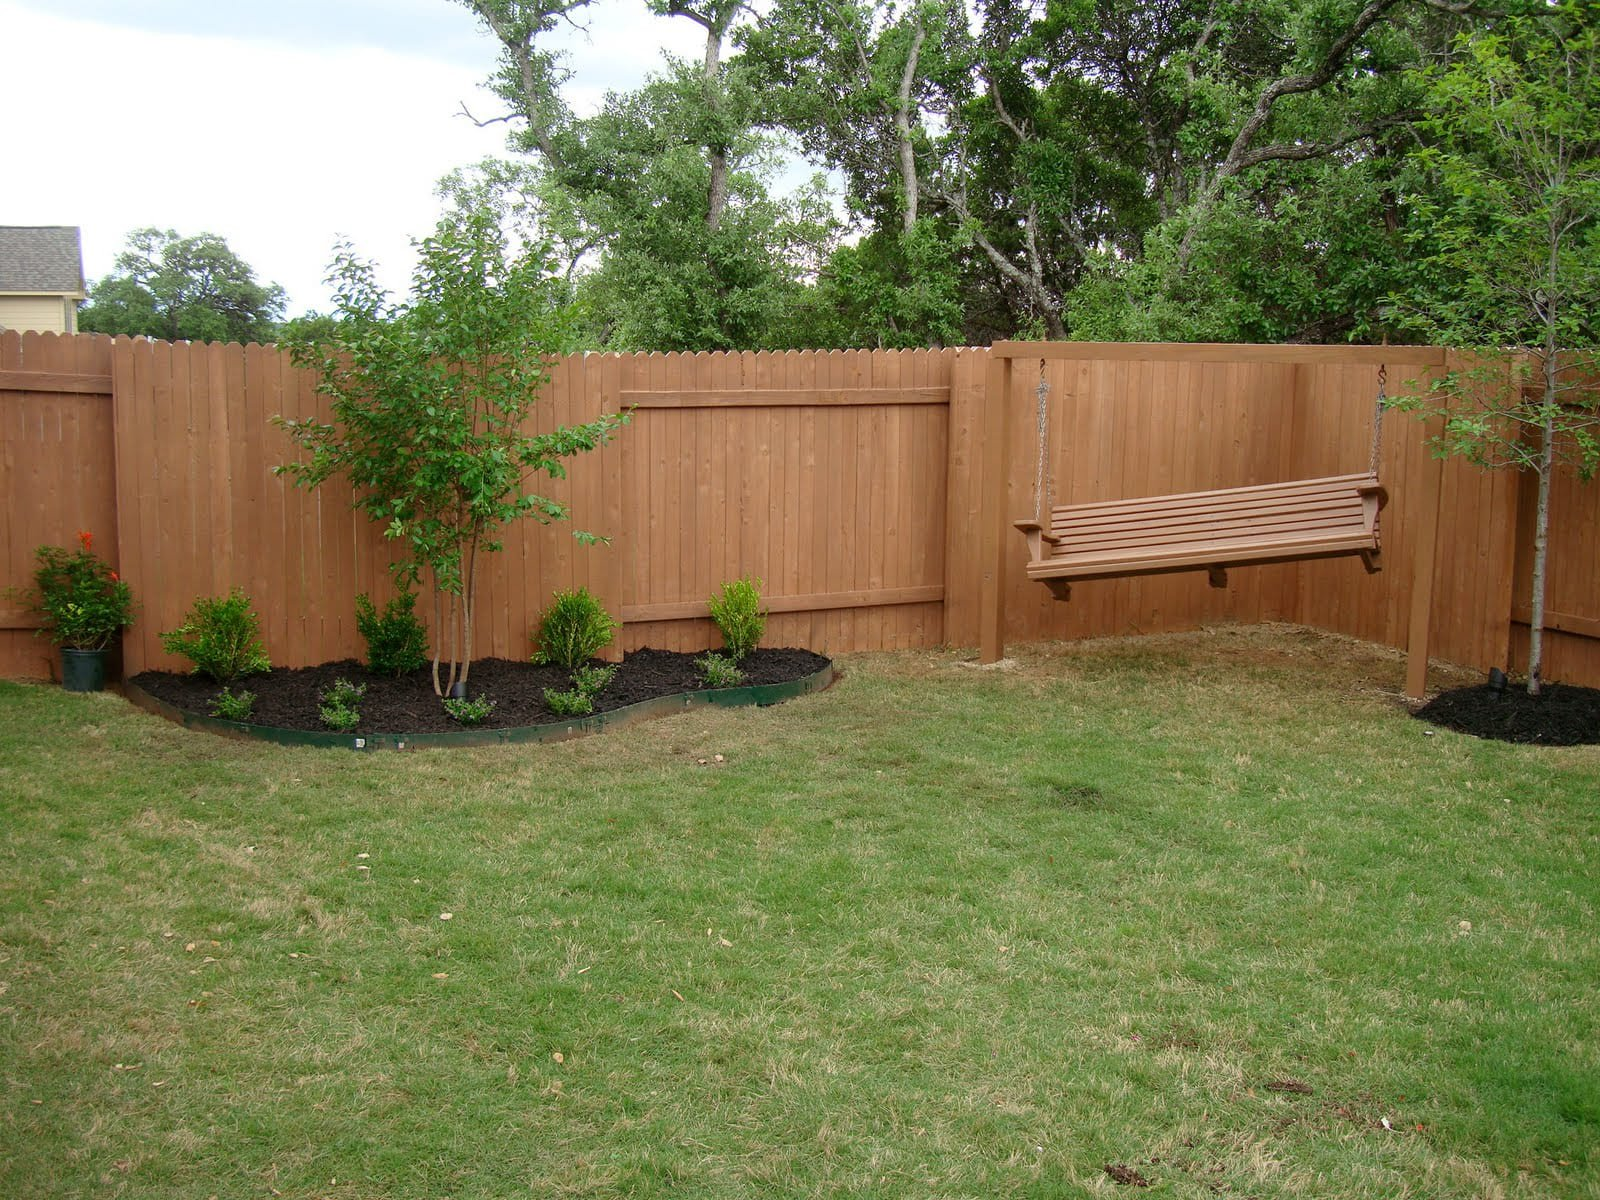 Simphome.com hardwood fence panels wooden for home e2 80 93 design and diy for 2020 2021